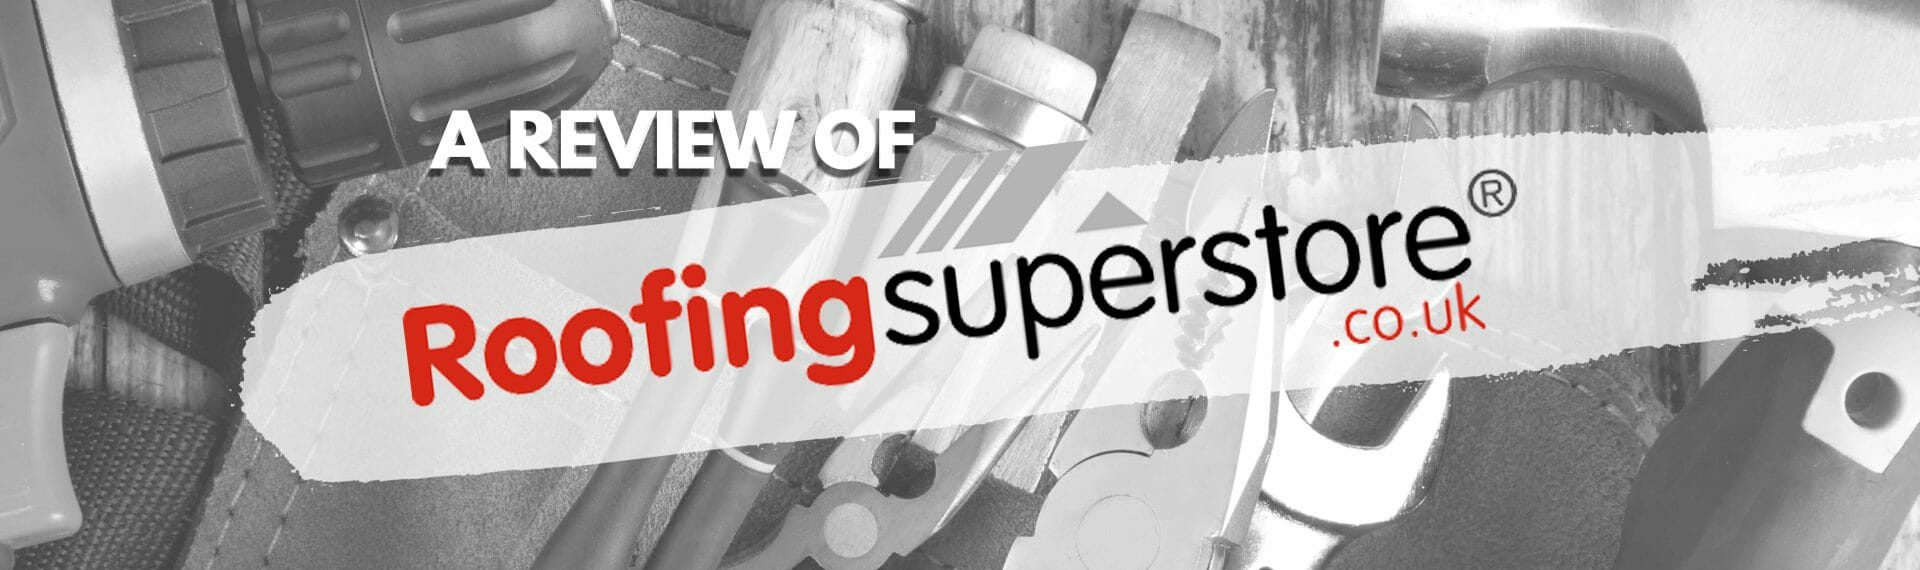 The Roof, The Whole Roof & Nothing But The Roof About Roofing Superstore: Our Review As Part Of The Builder's Supplies & Tools Review Series